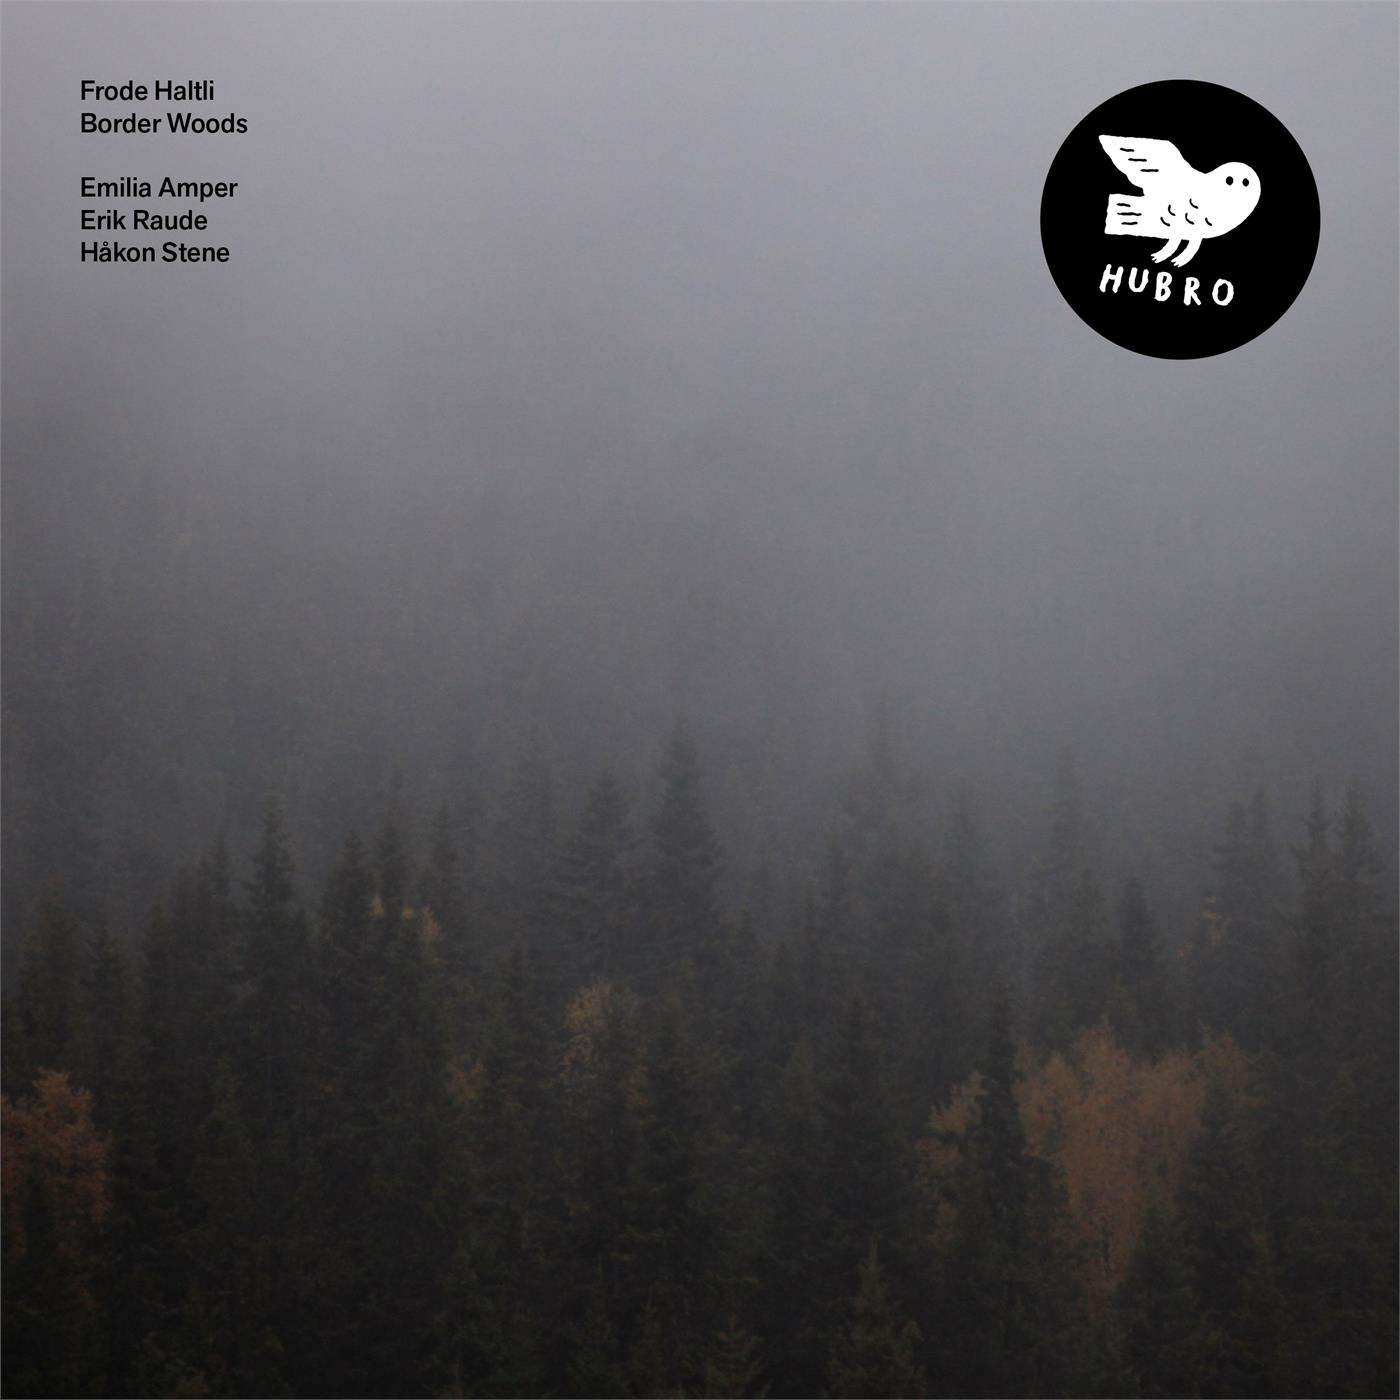 HUBROLP3613 Hubro  Frode Haltli The Border Woods (LP)